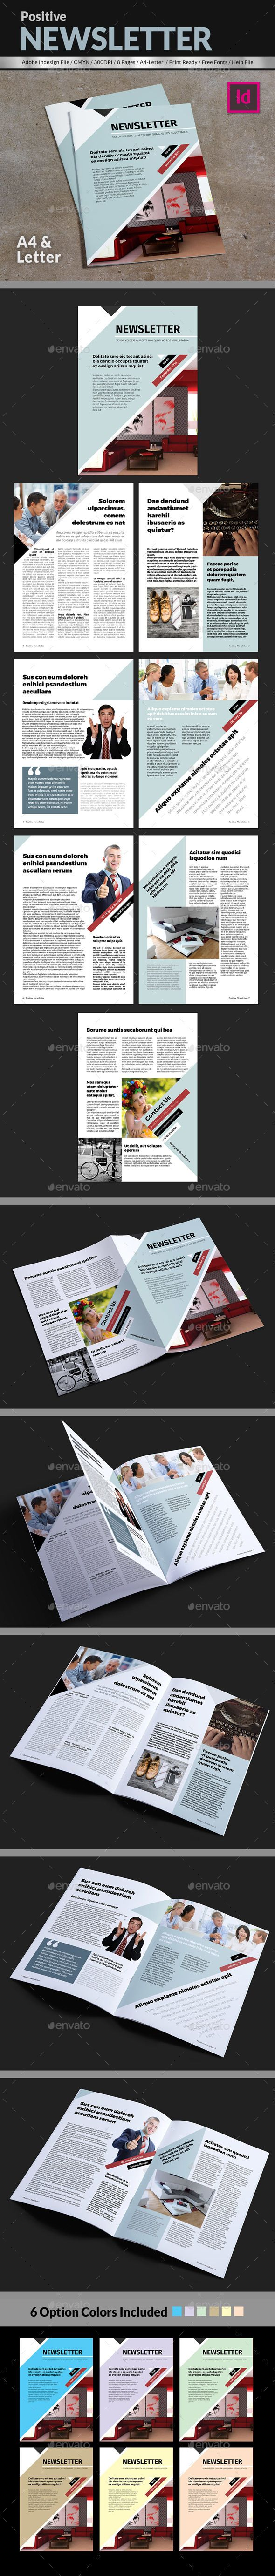 Positive #Newsletter Template - Newsletters Print #Templates Download here: https://graphicriver.net/item/positive-newsletter-template/18151511?ref=alena994